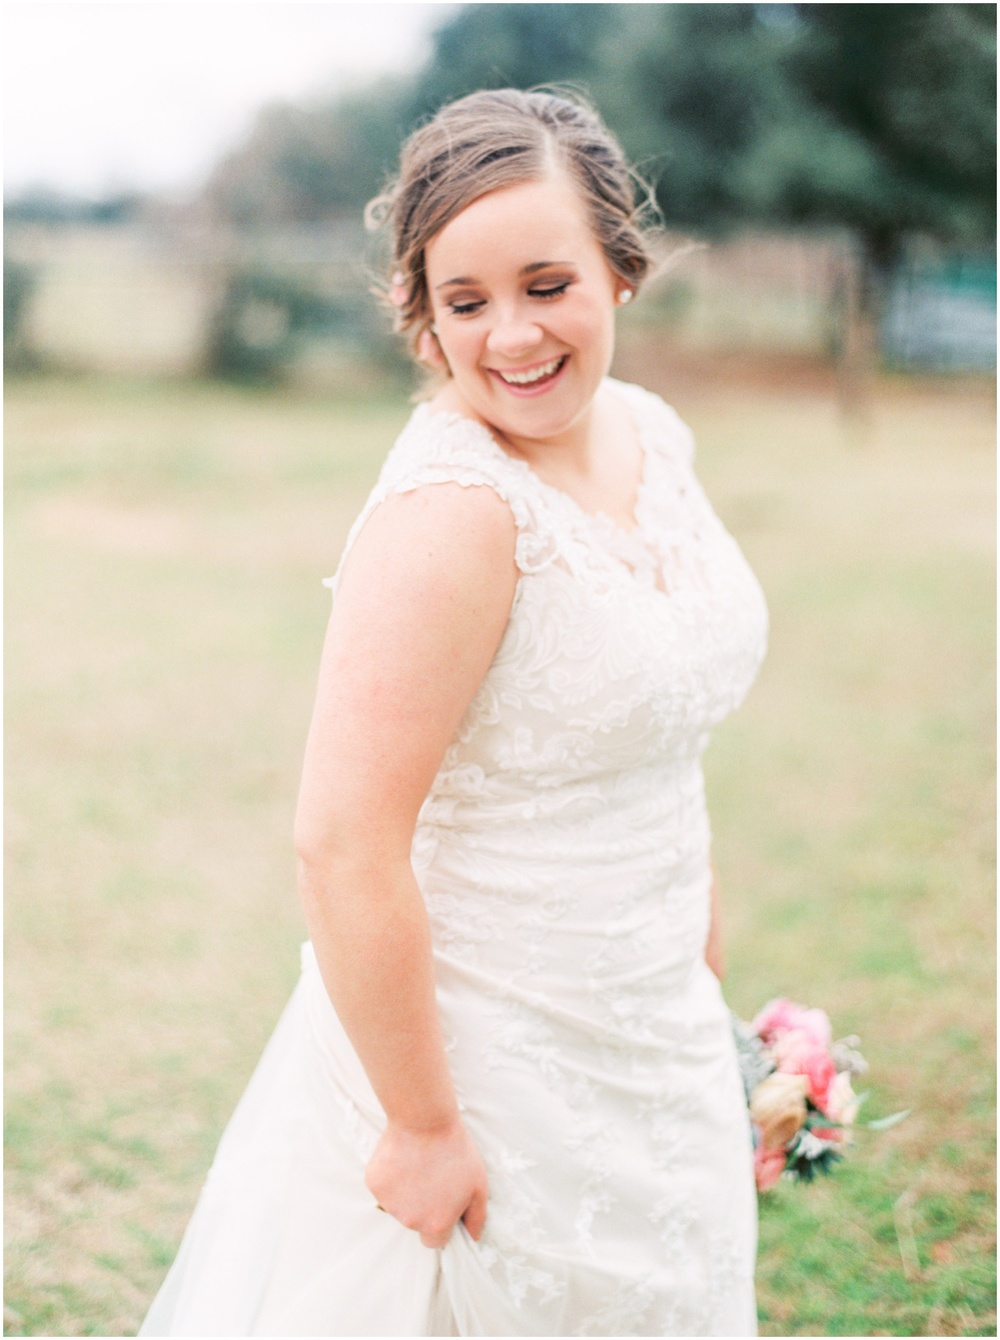 Sarah Best Photography - Claire's Bridals - The Amish Barn at Edge-18_STP.jpg